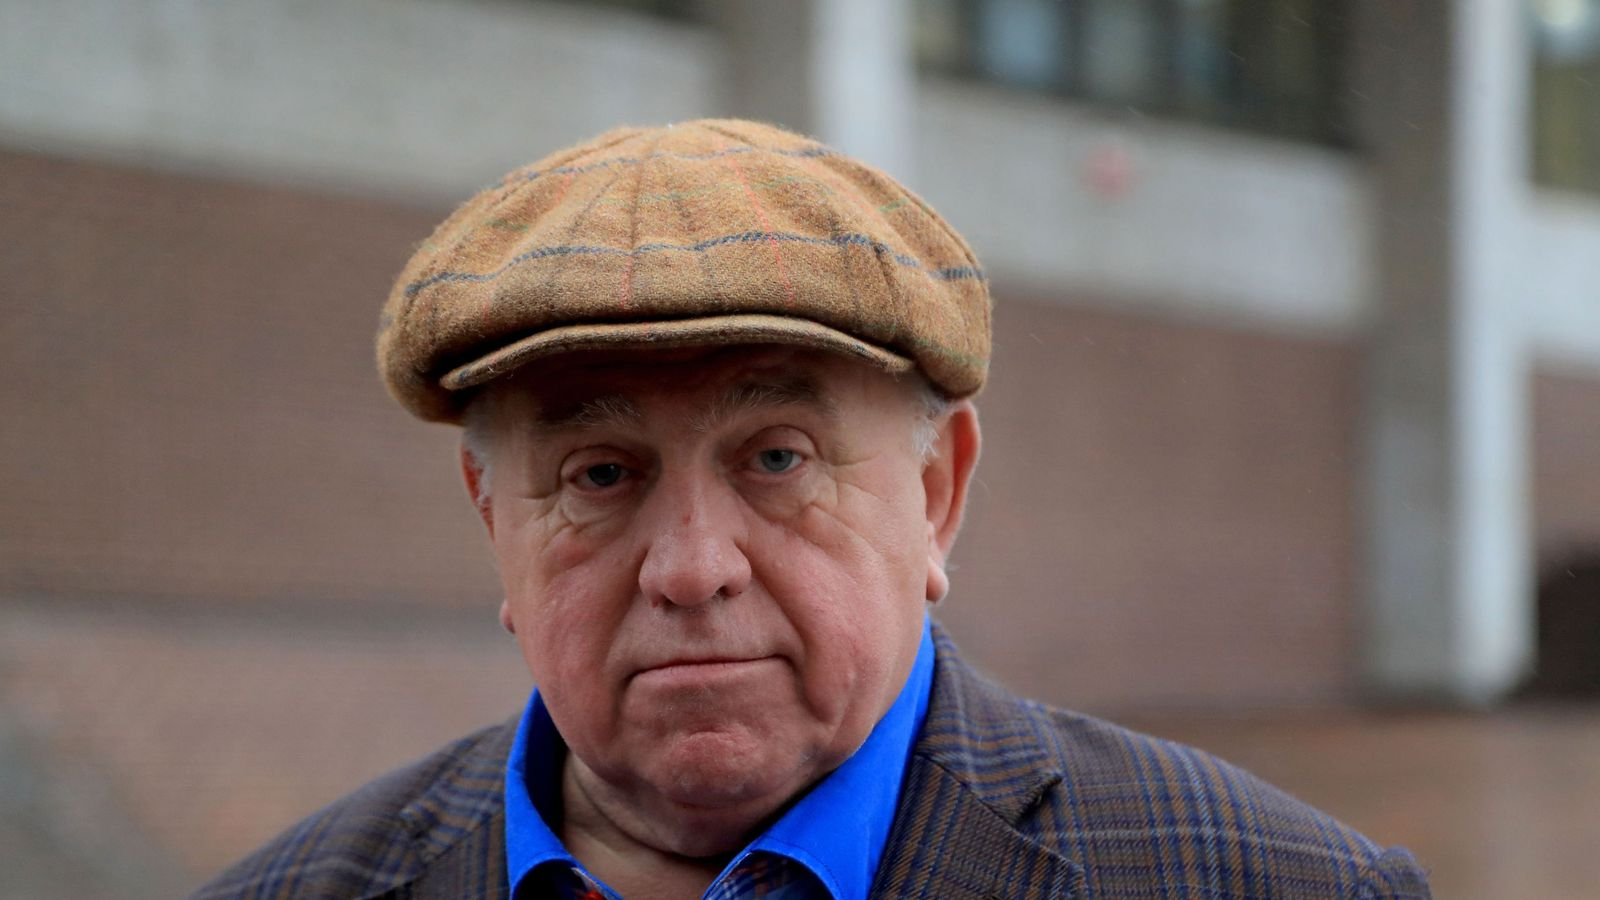 Landlord Fergus Wilson's 'curry smell' ban is unlawful, court rules: A buy-to-let landlord who banned Indian and Pakistani tenants because he claimed they left his property smelling of curry has been told the policy is unlawful.